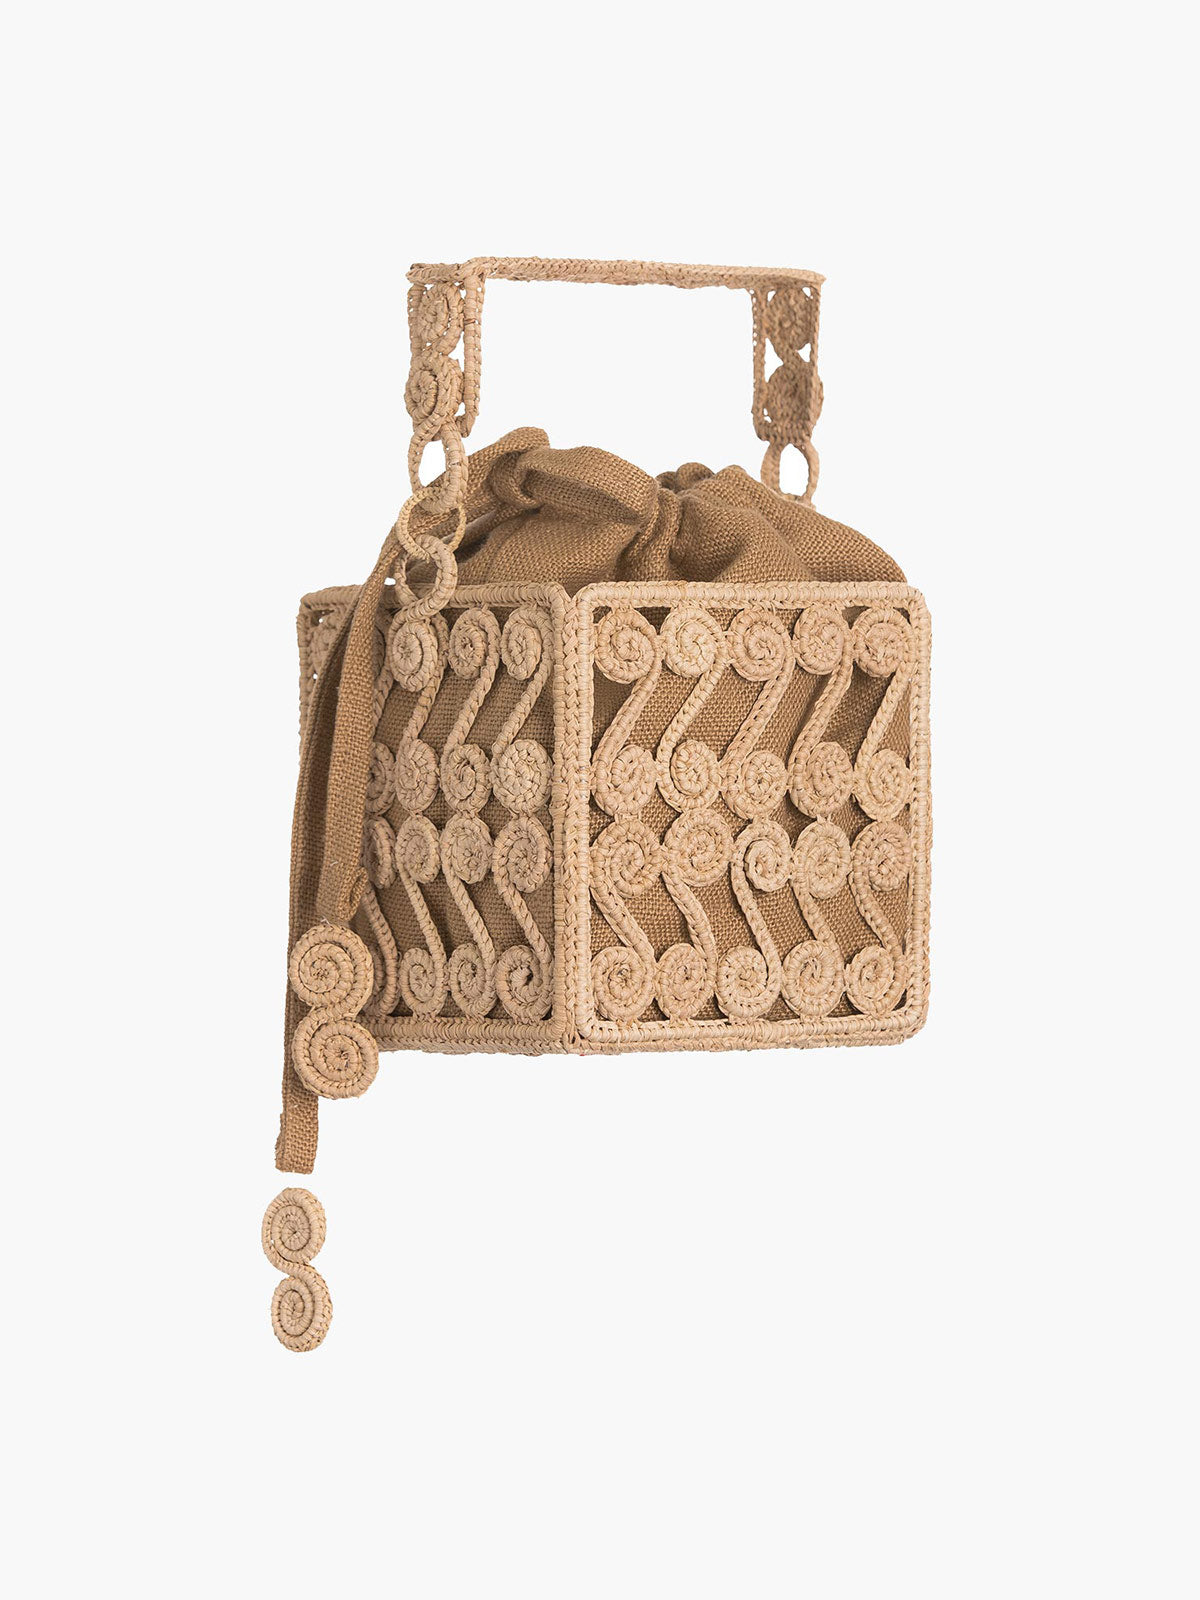 Spiral Scroll Square Bag